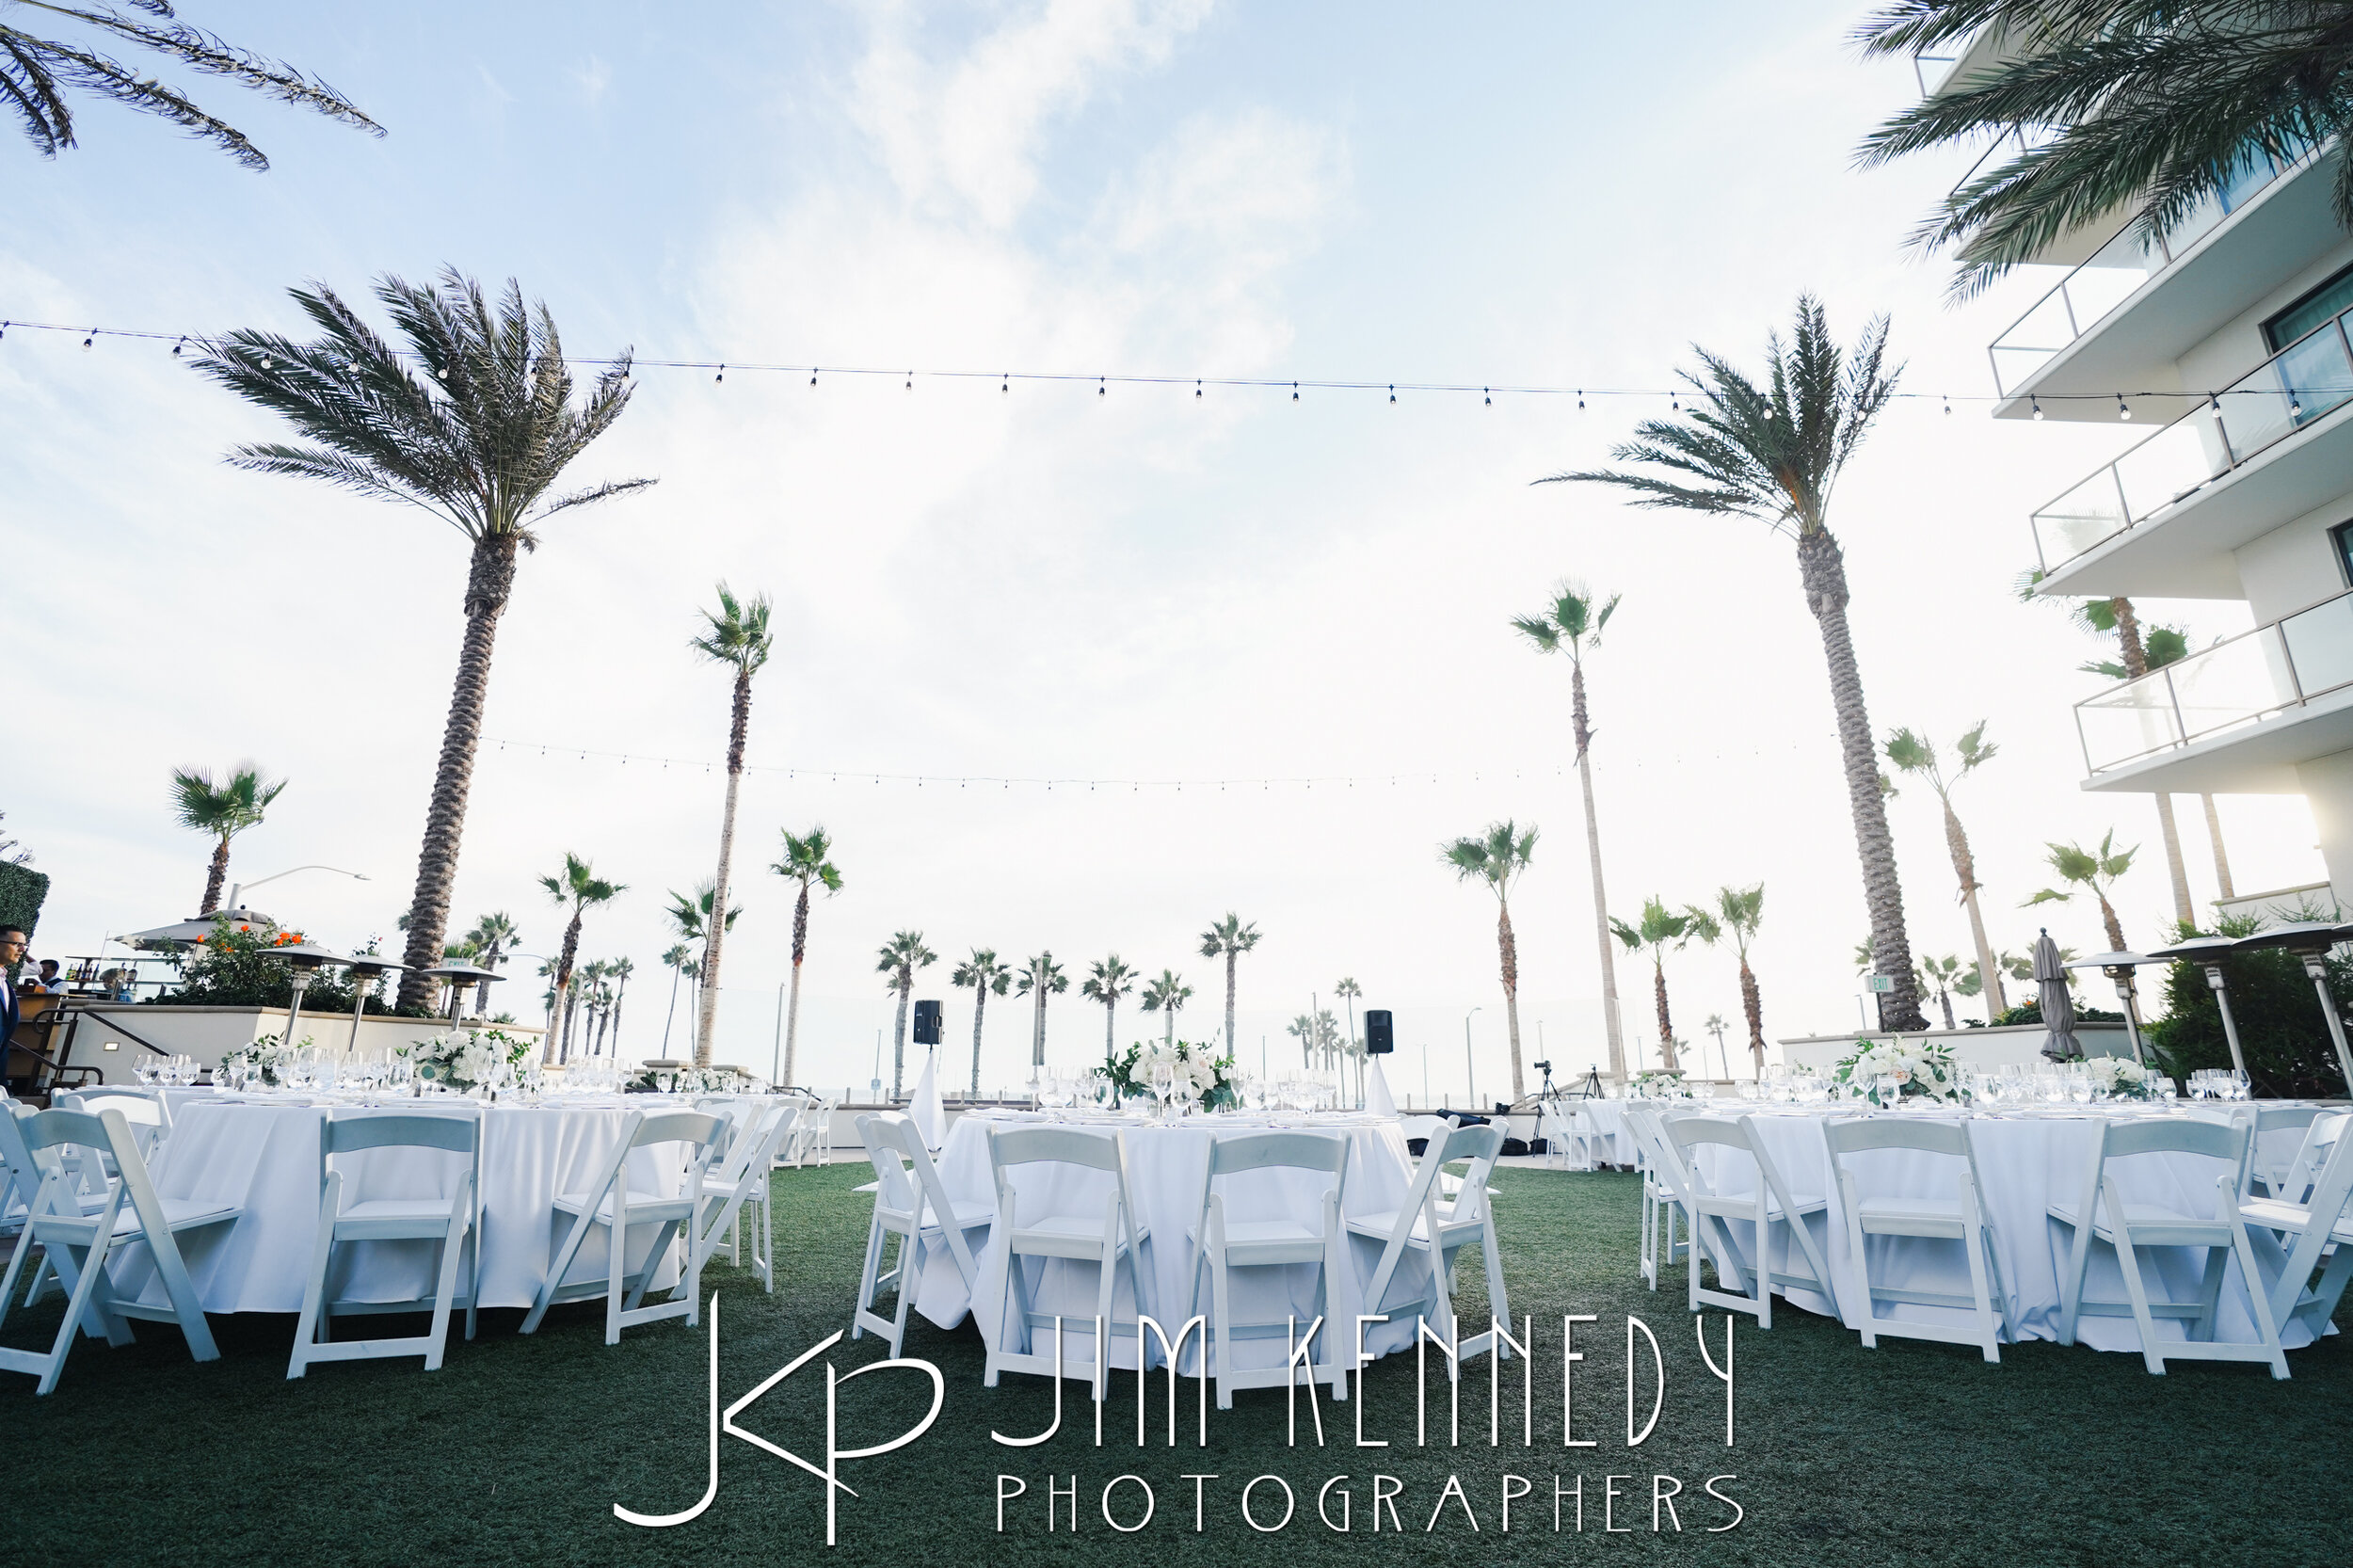 waterfront-hilton-wedding-jim-kennedy-photographers_0168.JPG